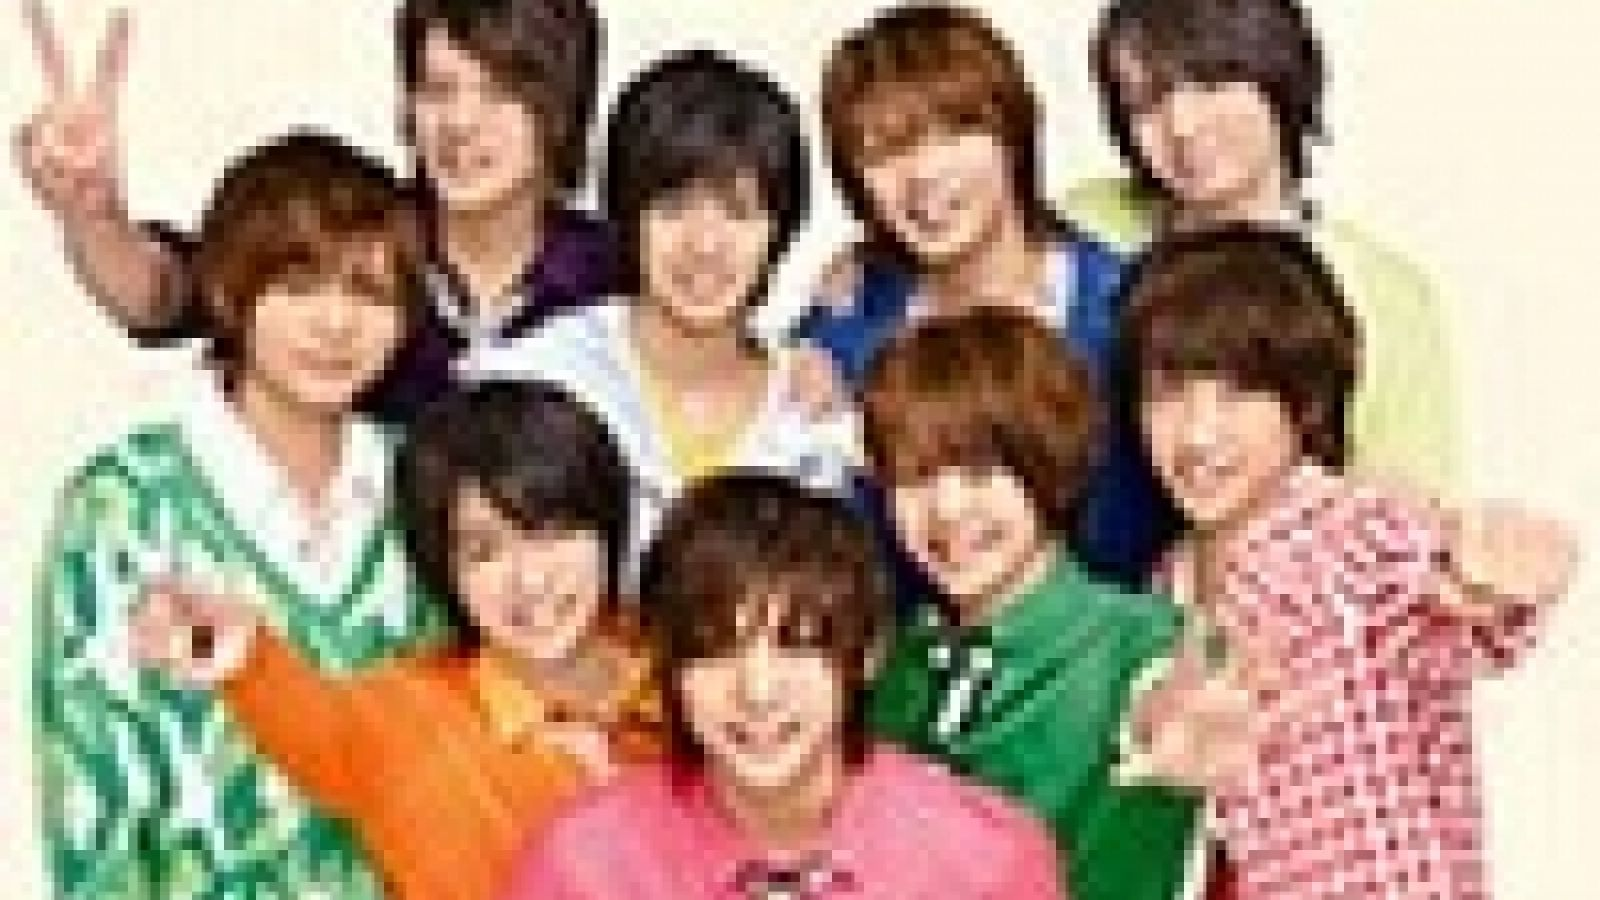 Second Album from Hey! Say! JUMP © 2010 Zy.connection Inc. All Rights Reserved.